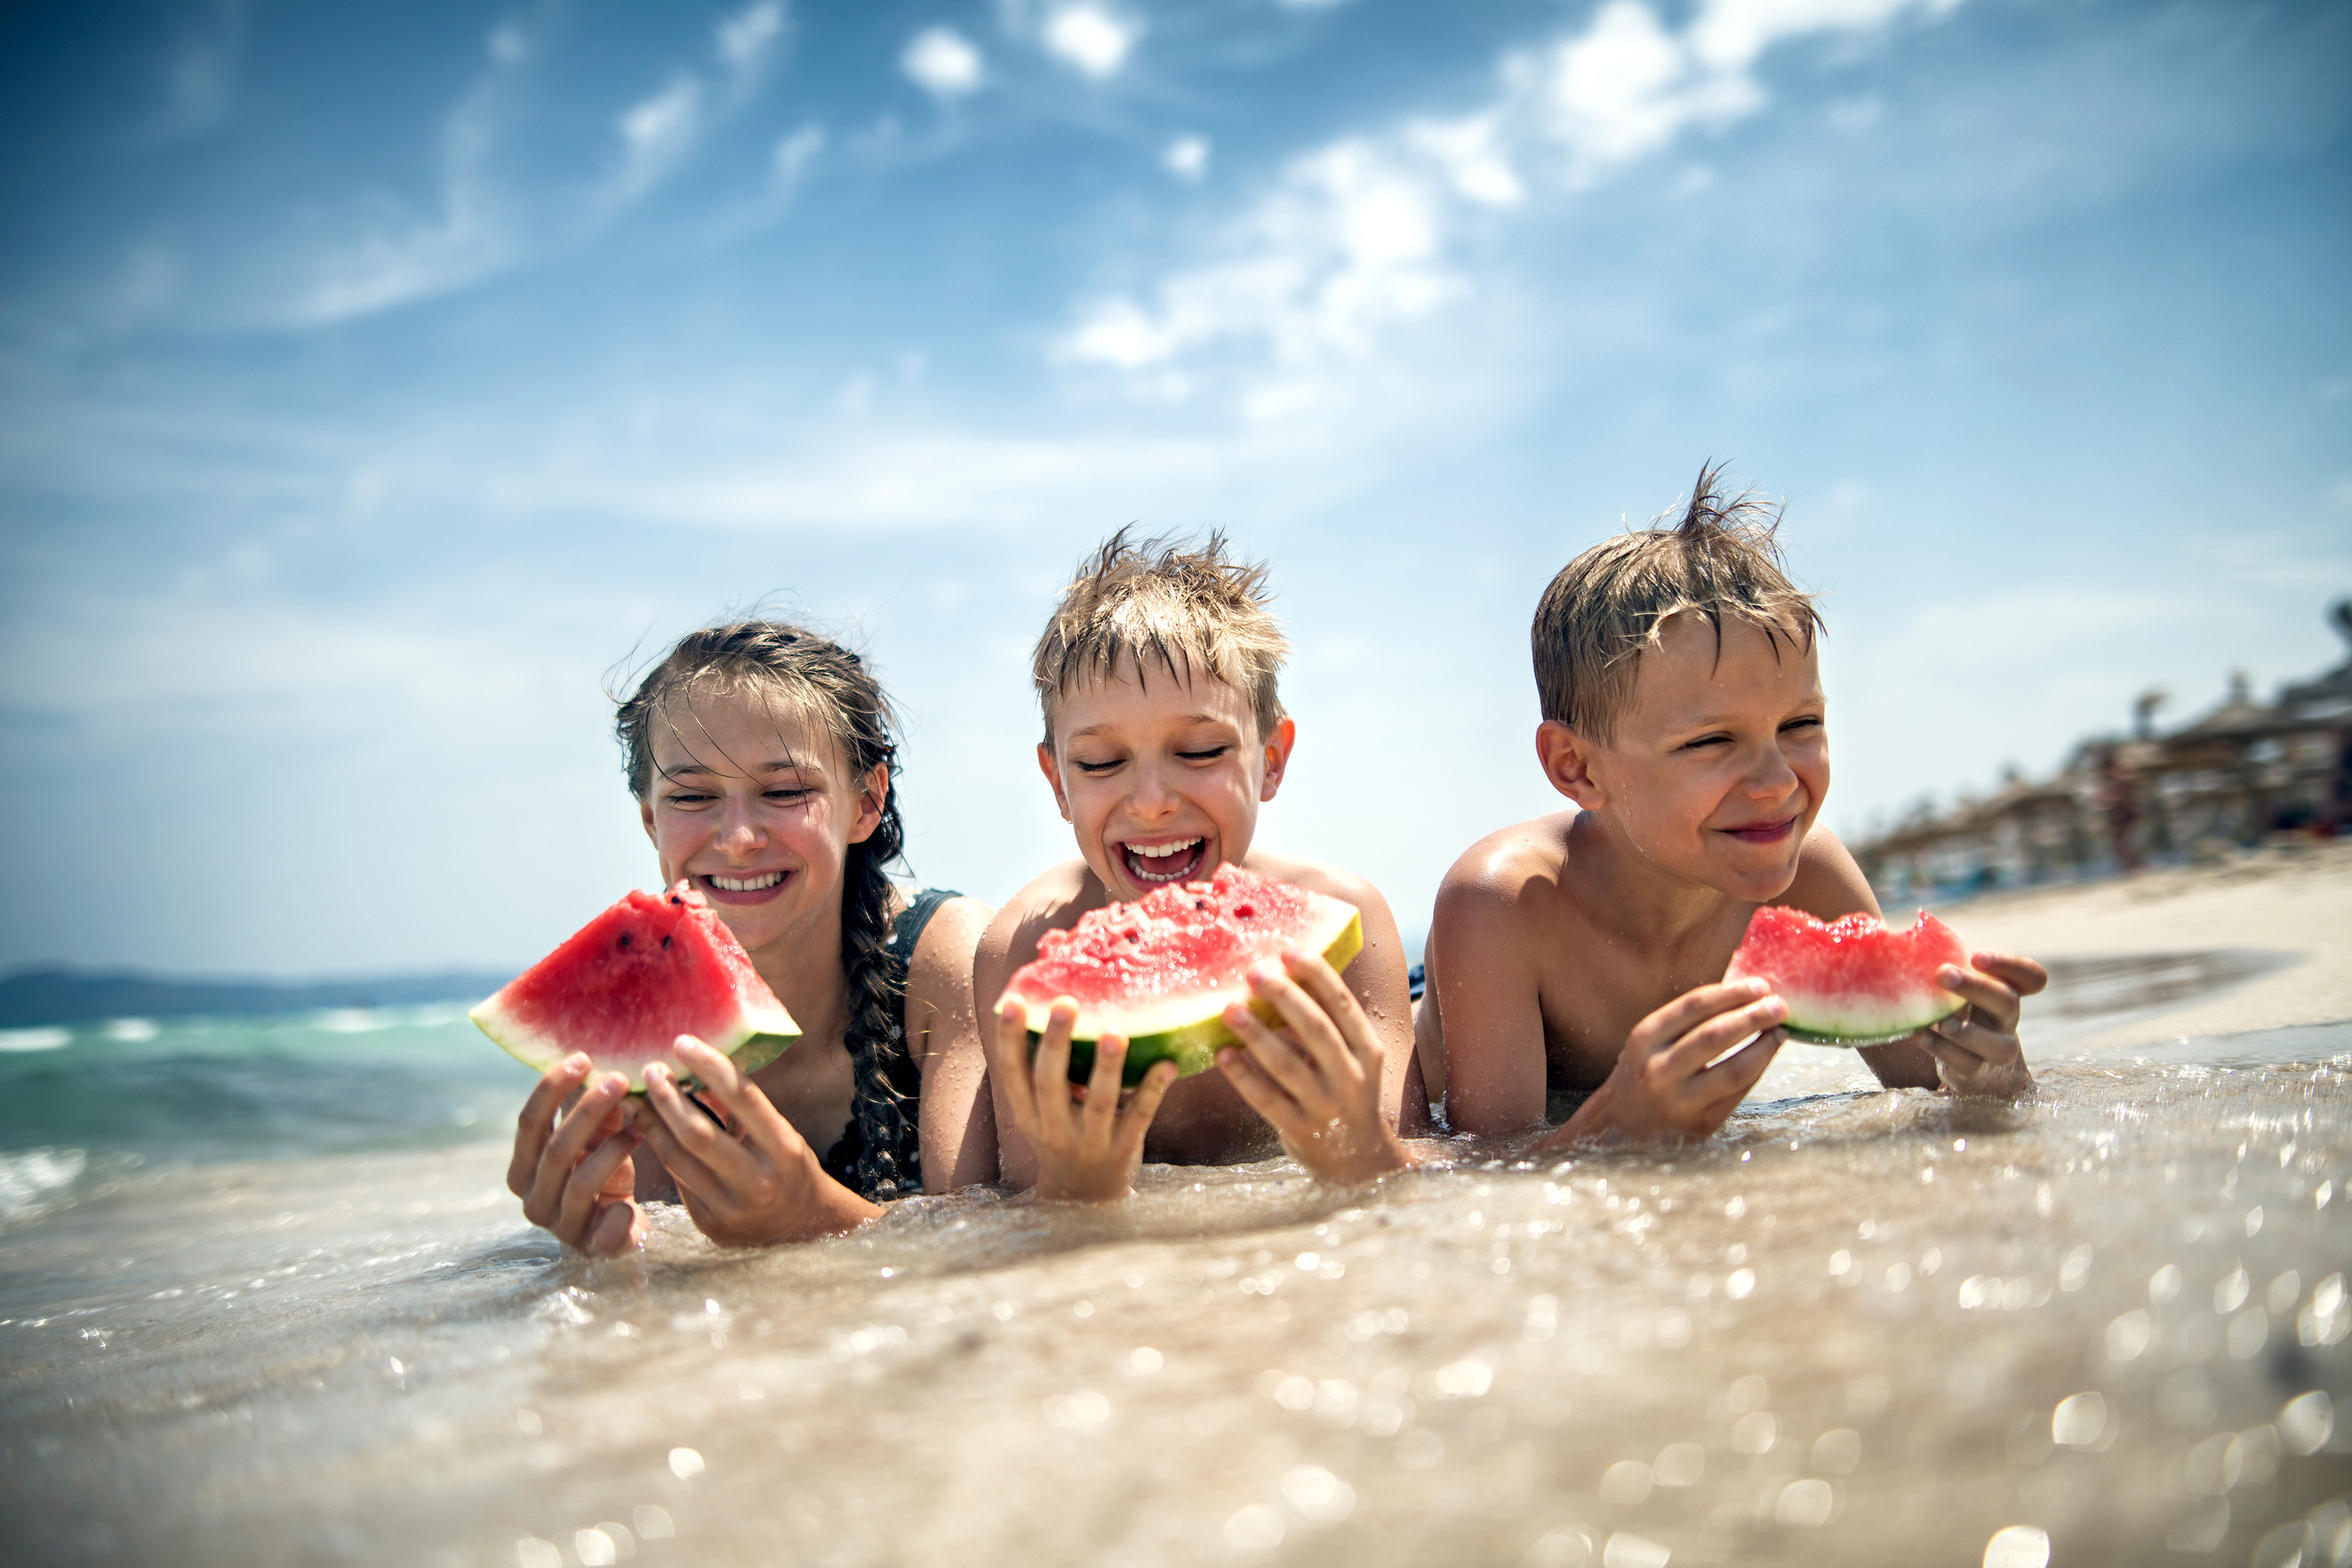 Children eating watermelon in the ocean - Westgate Resorts